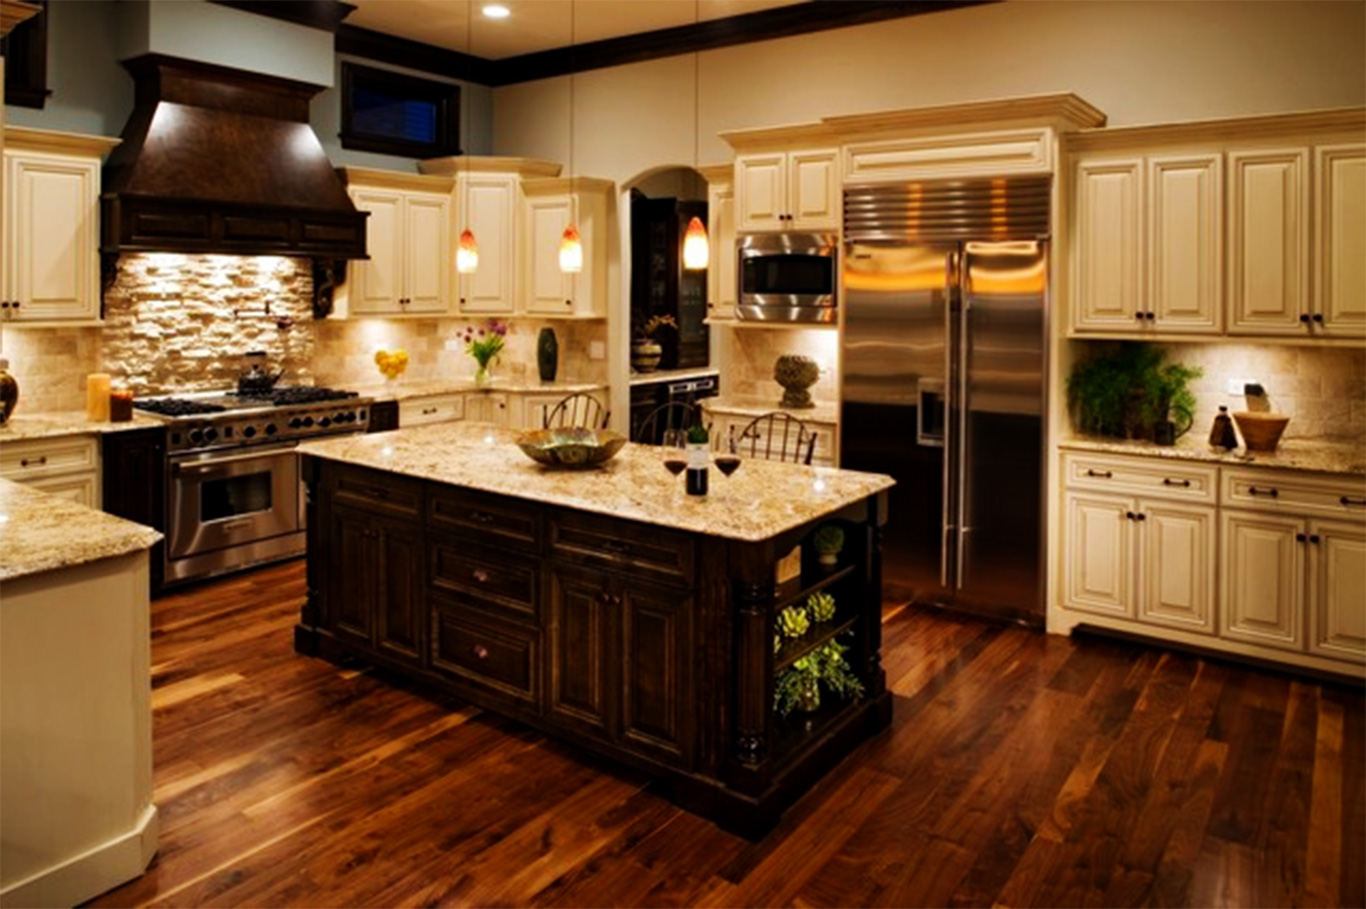 11 awesome type of kitchen design ideas - Kitchen design images small kitchens ...